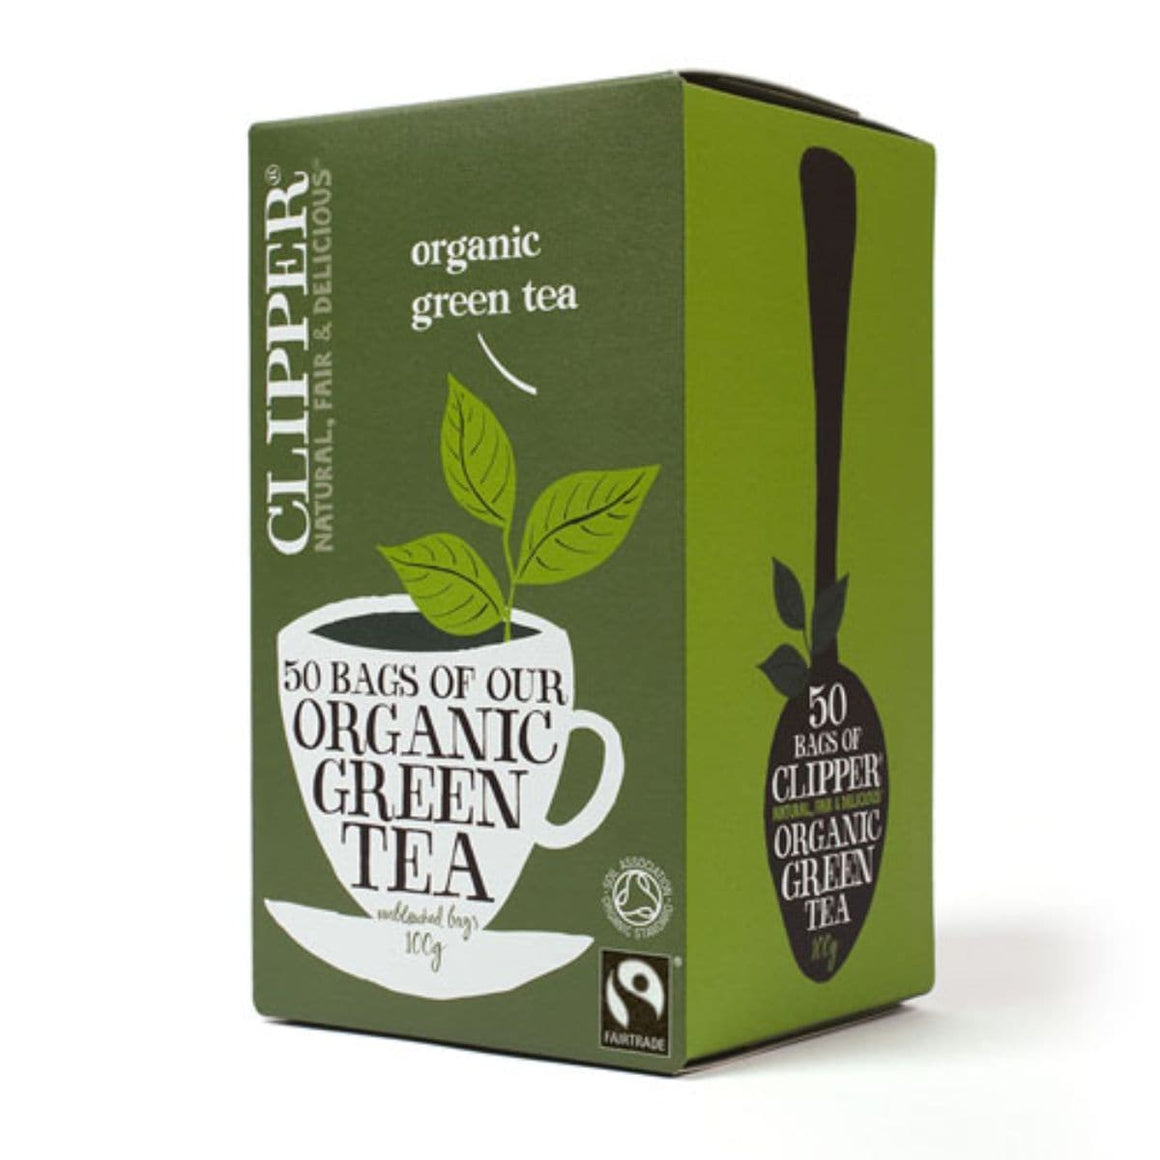 Clipper Organic Green Tea - 50 bags - SoulBia